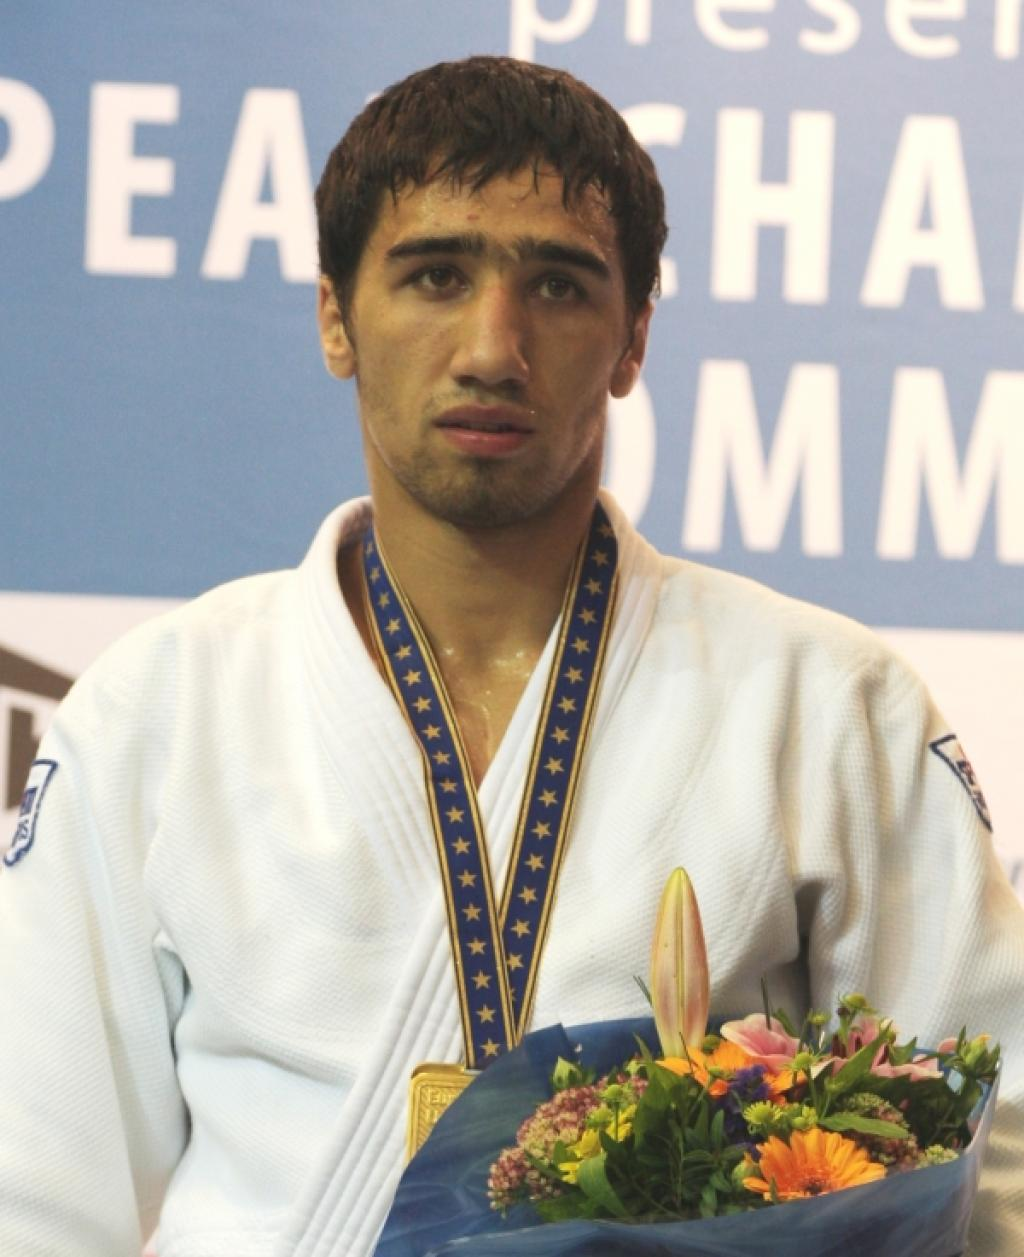 Khalmurzaev defeats Muensterberg and Toth to take the gold for Russia